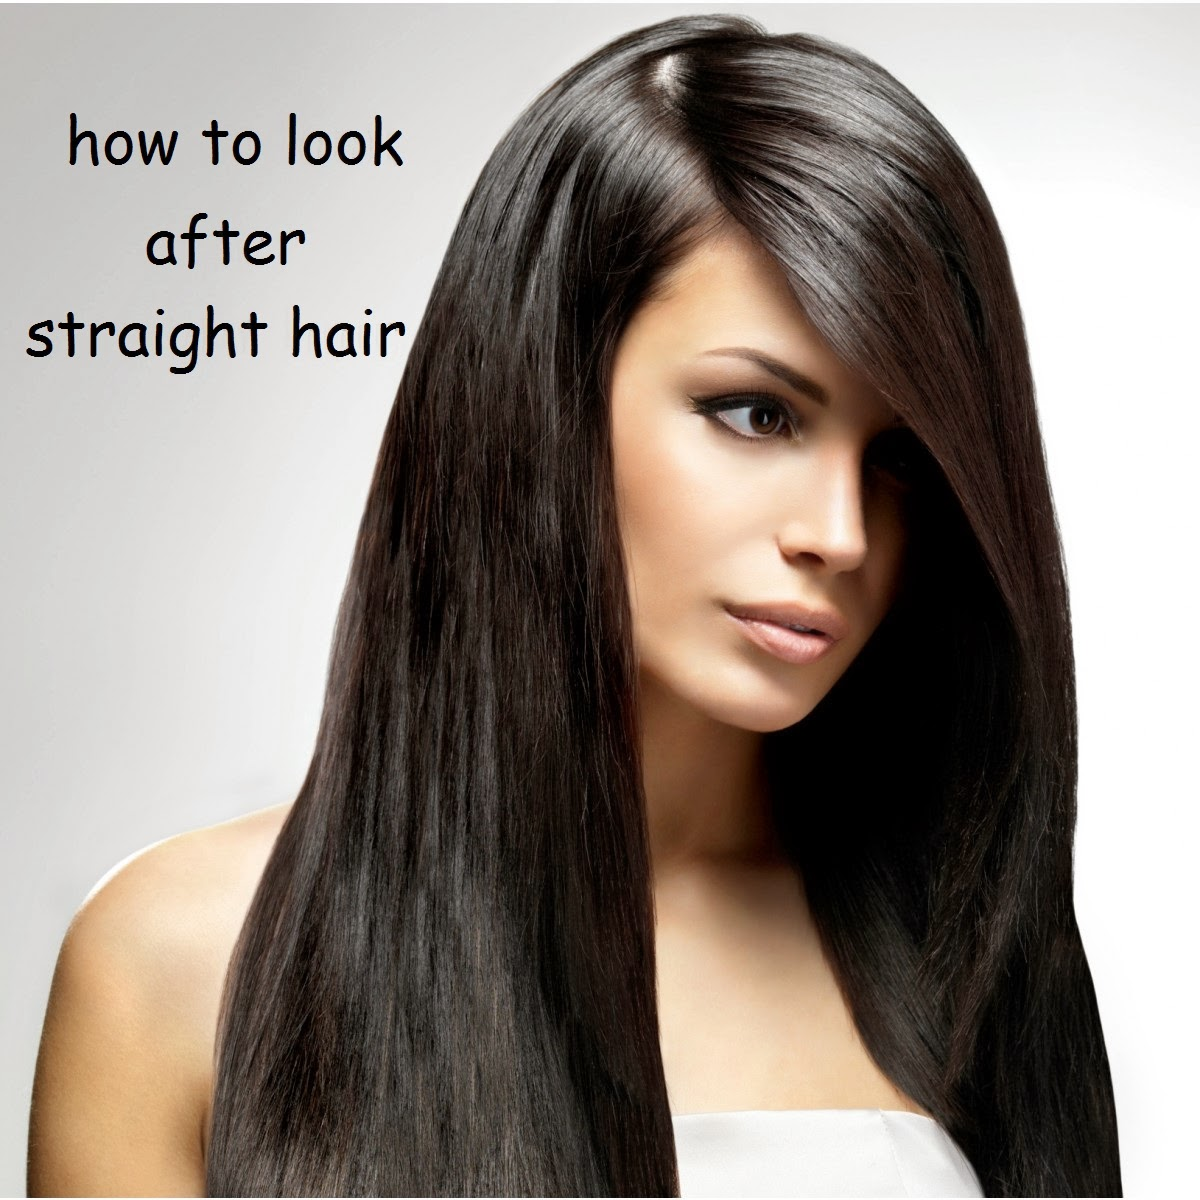 HAIR BY ZARA: HOW TO LOOK AFTER STRAIGHT HAIR